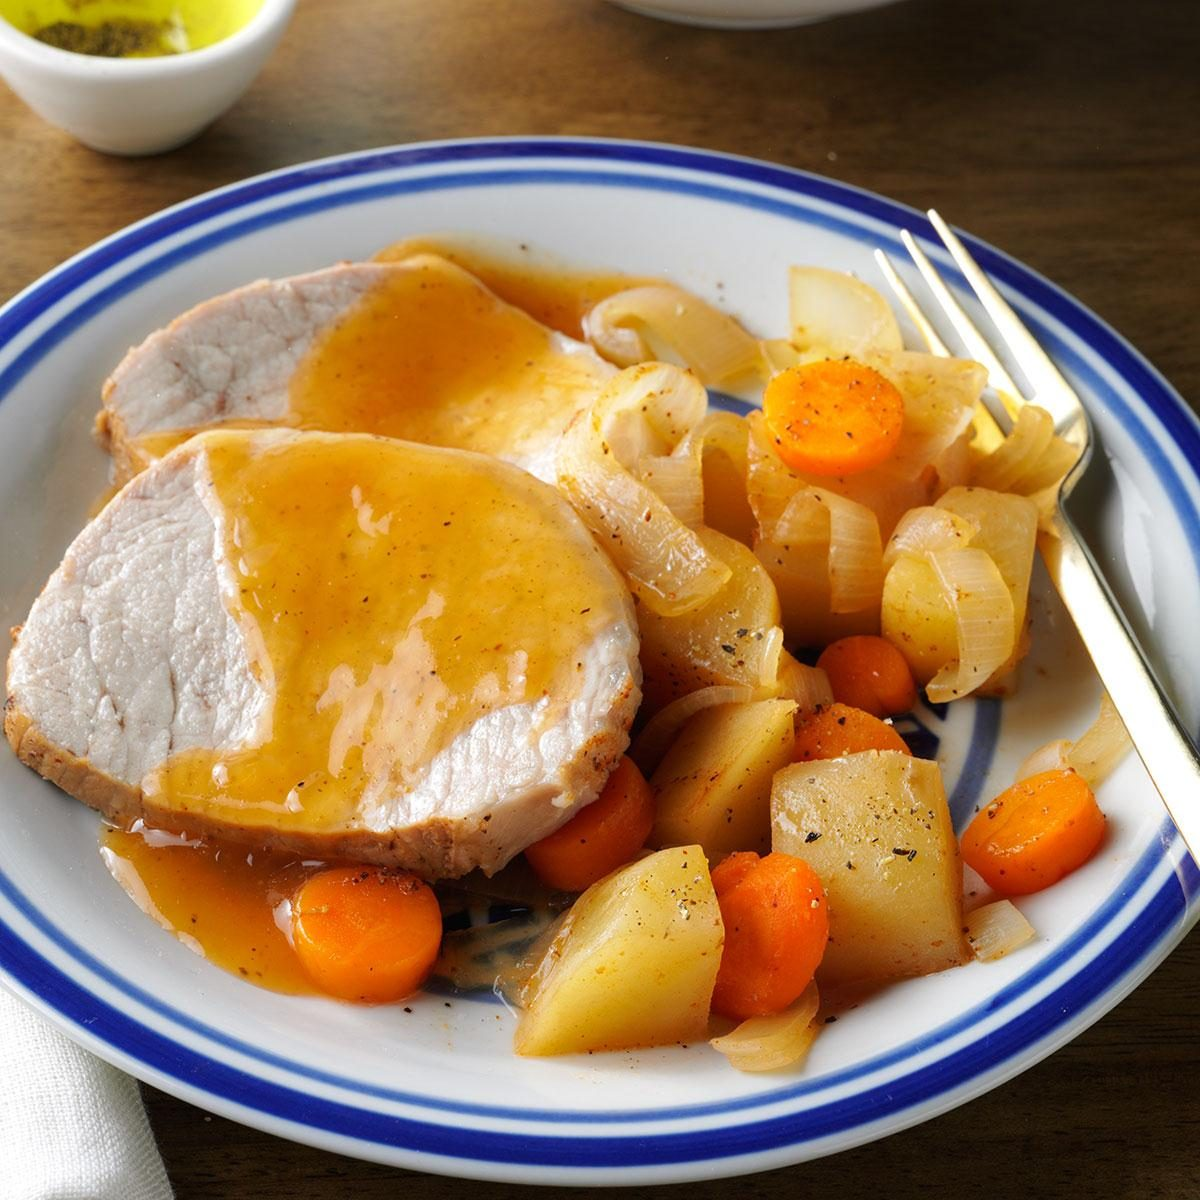 Slow Cooker Dinners: Slow-Cooked Pork Roast Dinner Recipe